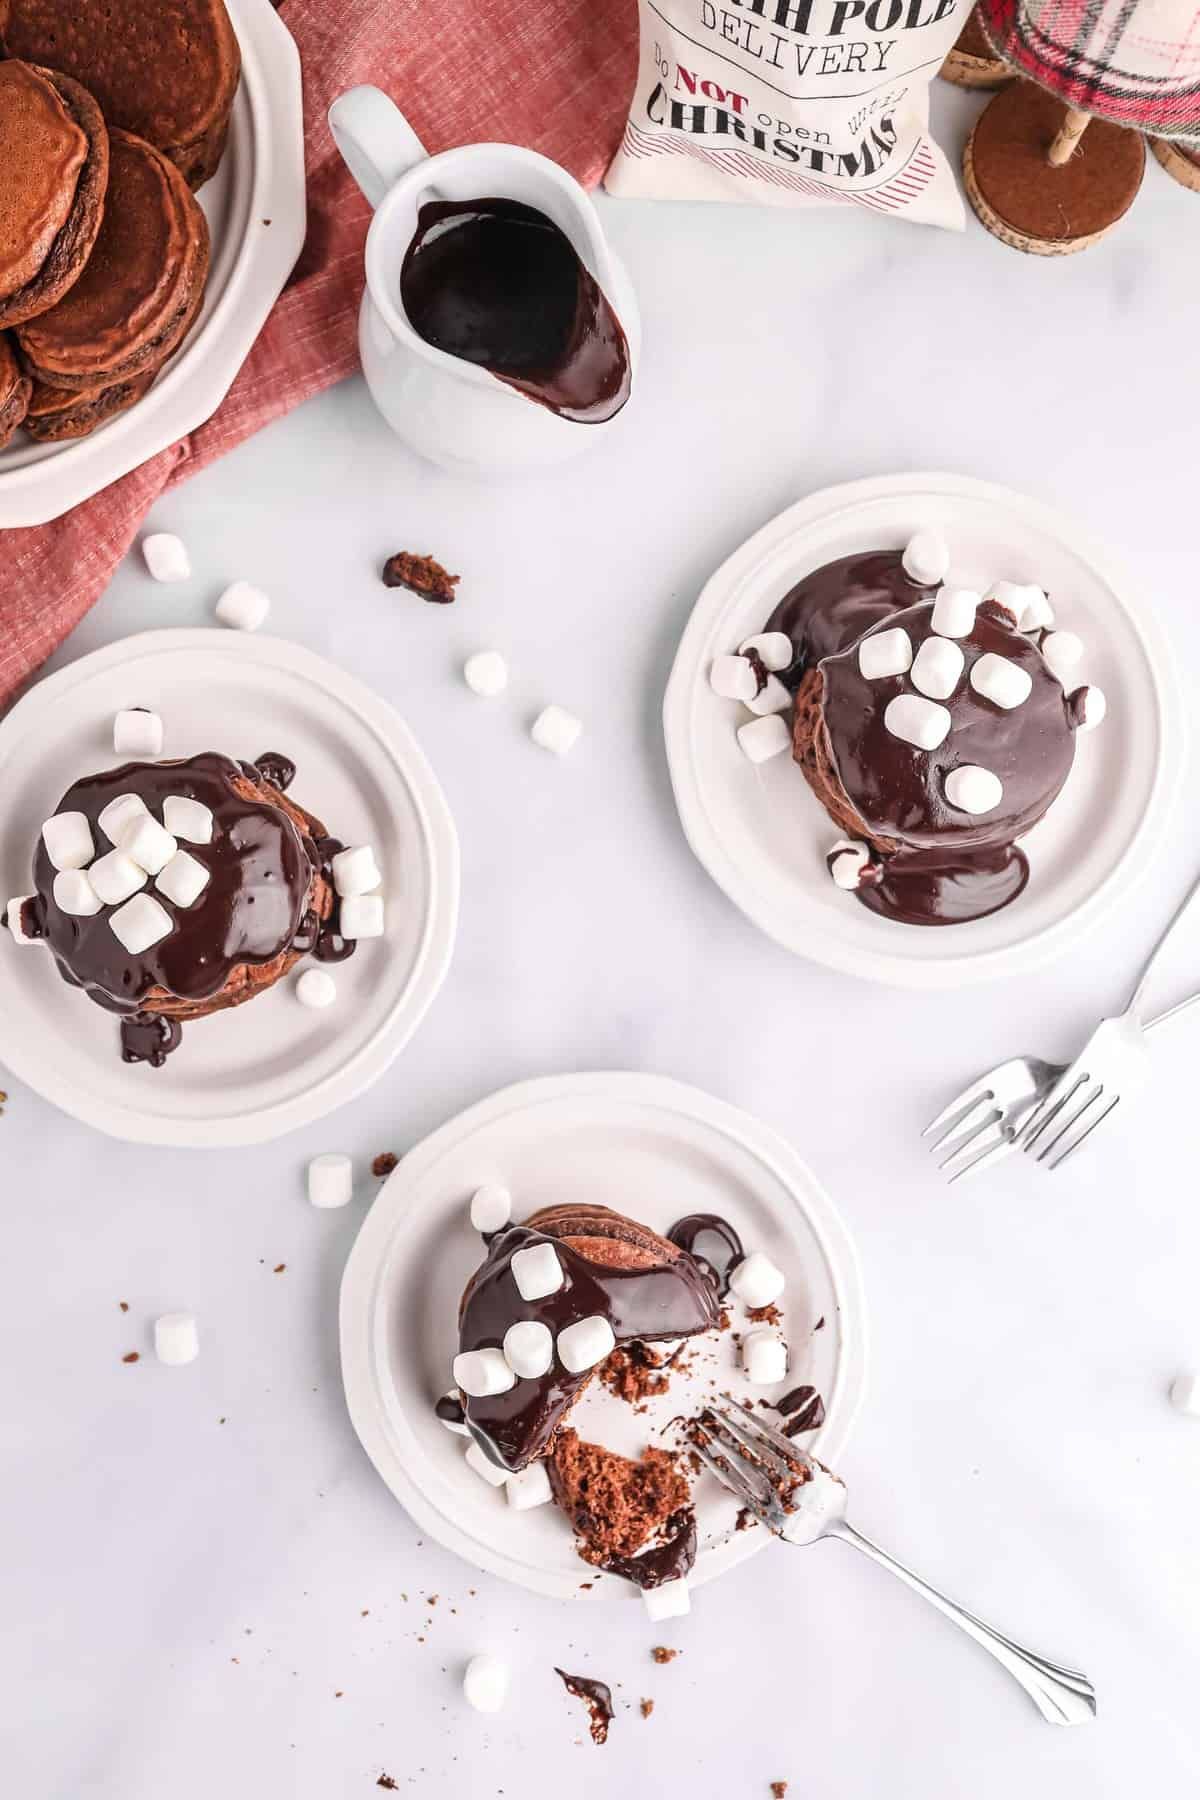 Three plates of pancakes with chocolate sauce and mini marshmallows on top.